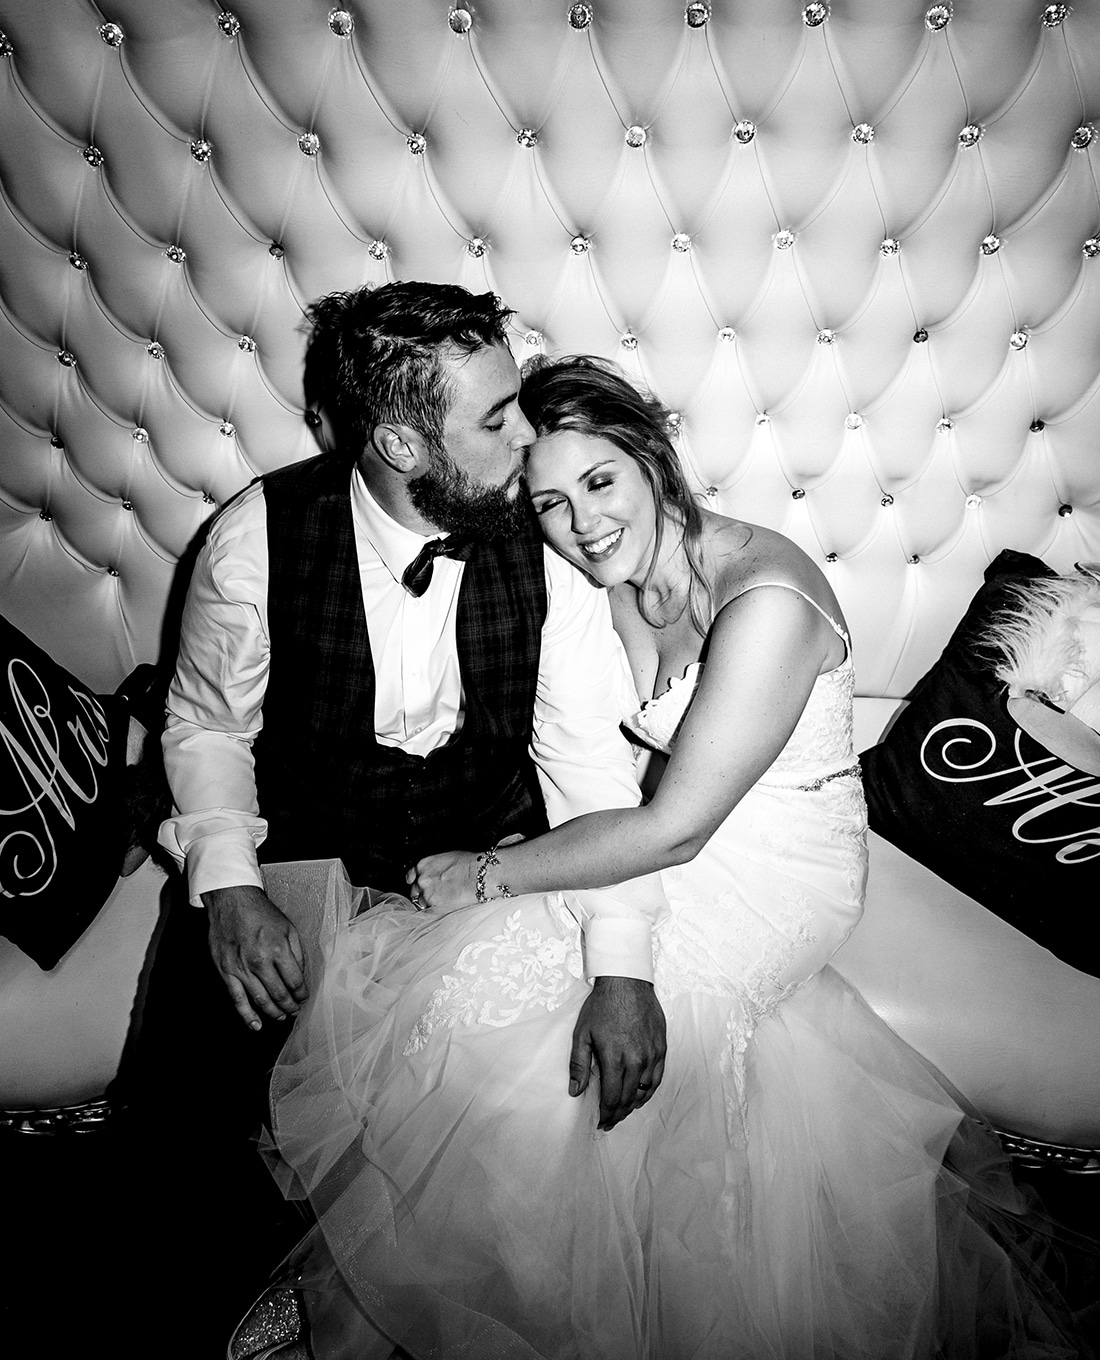 A casual, candid black and white picture of a bride and groom, snuggled on an elaborate couch, the groom kissing the bride on her forehead at the end of their wedding reception in Kansas City